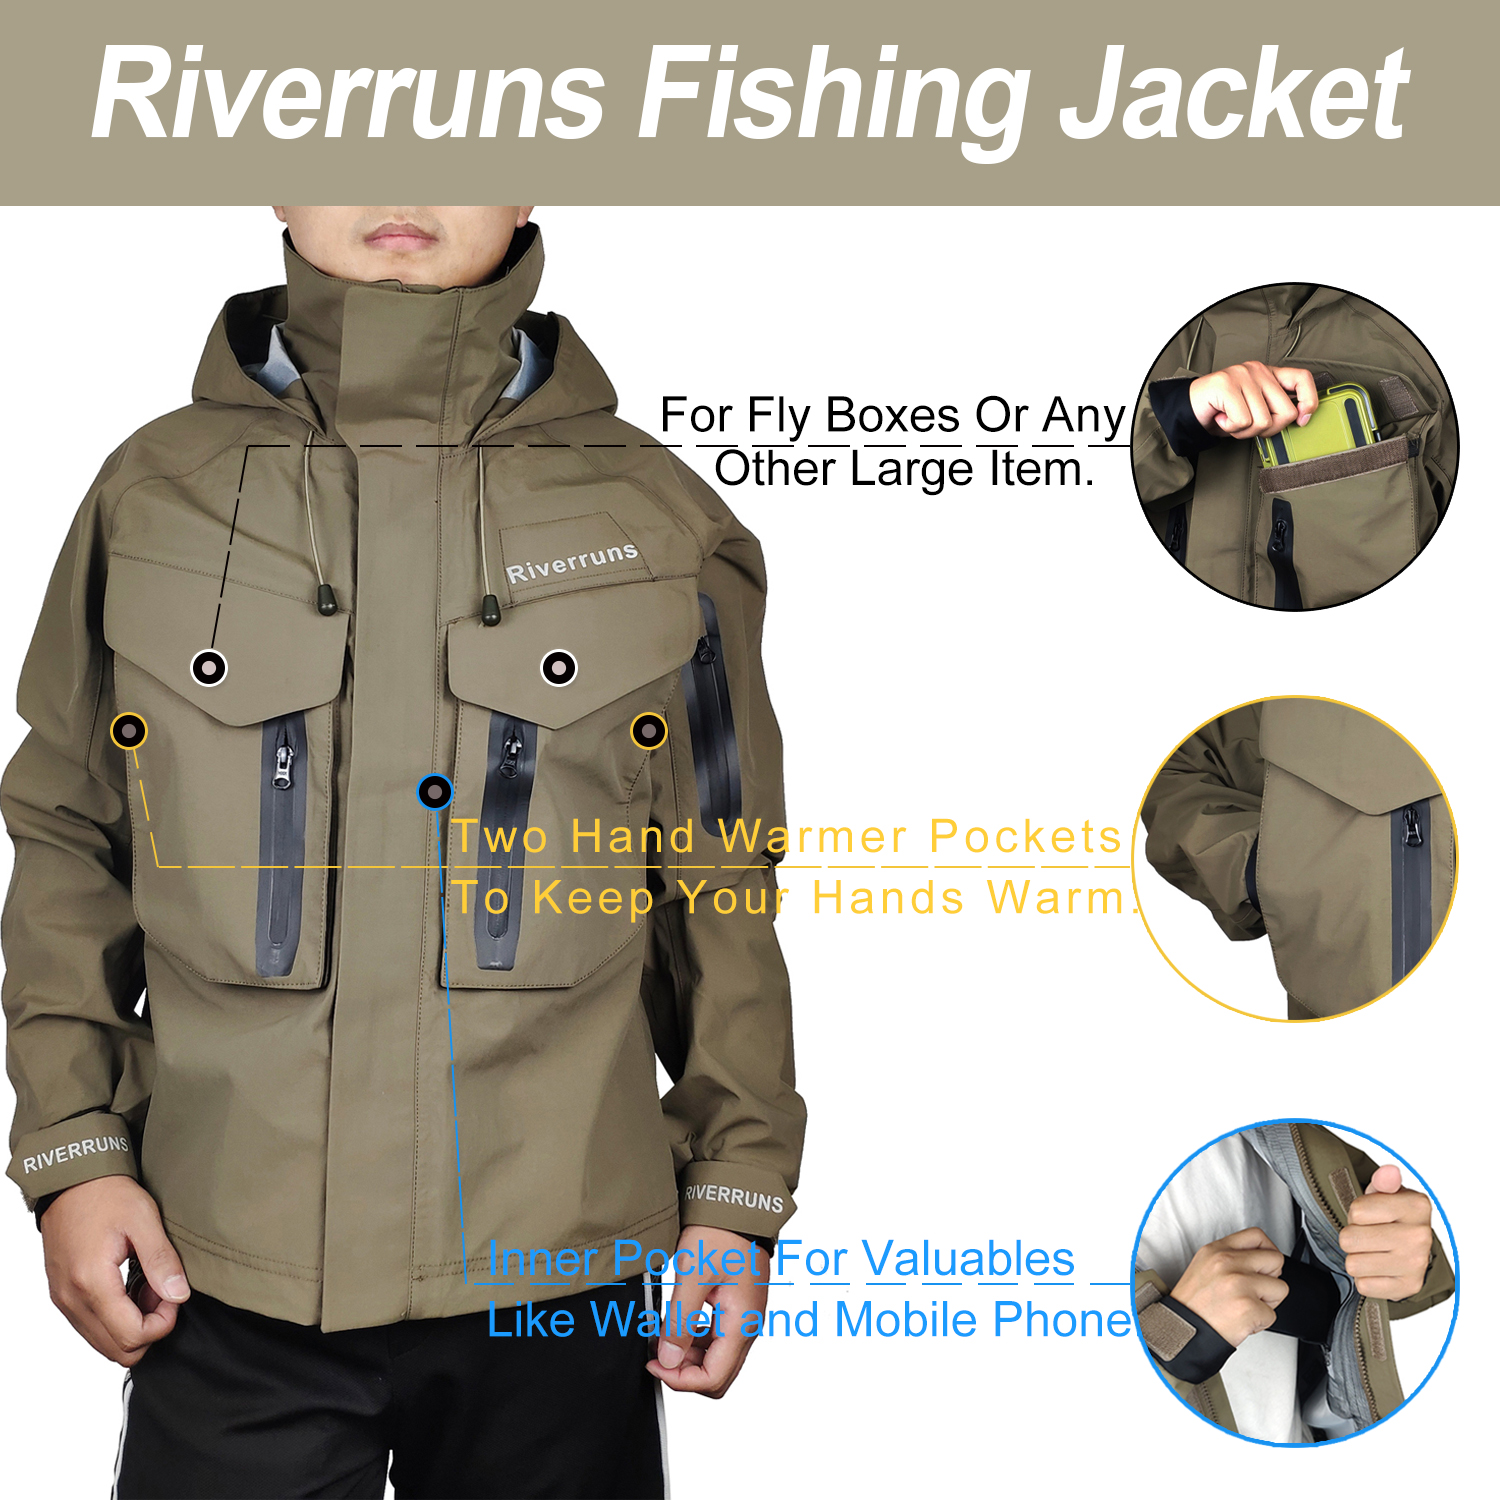 Aventik Fishing Jacket Breathable Outdoor Waterproof Rain Wading Jacket For Men Fishing Clothes Hiking Kayak And Hunting